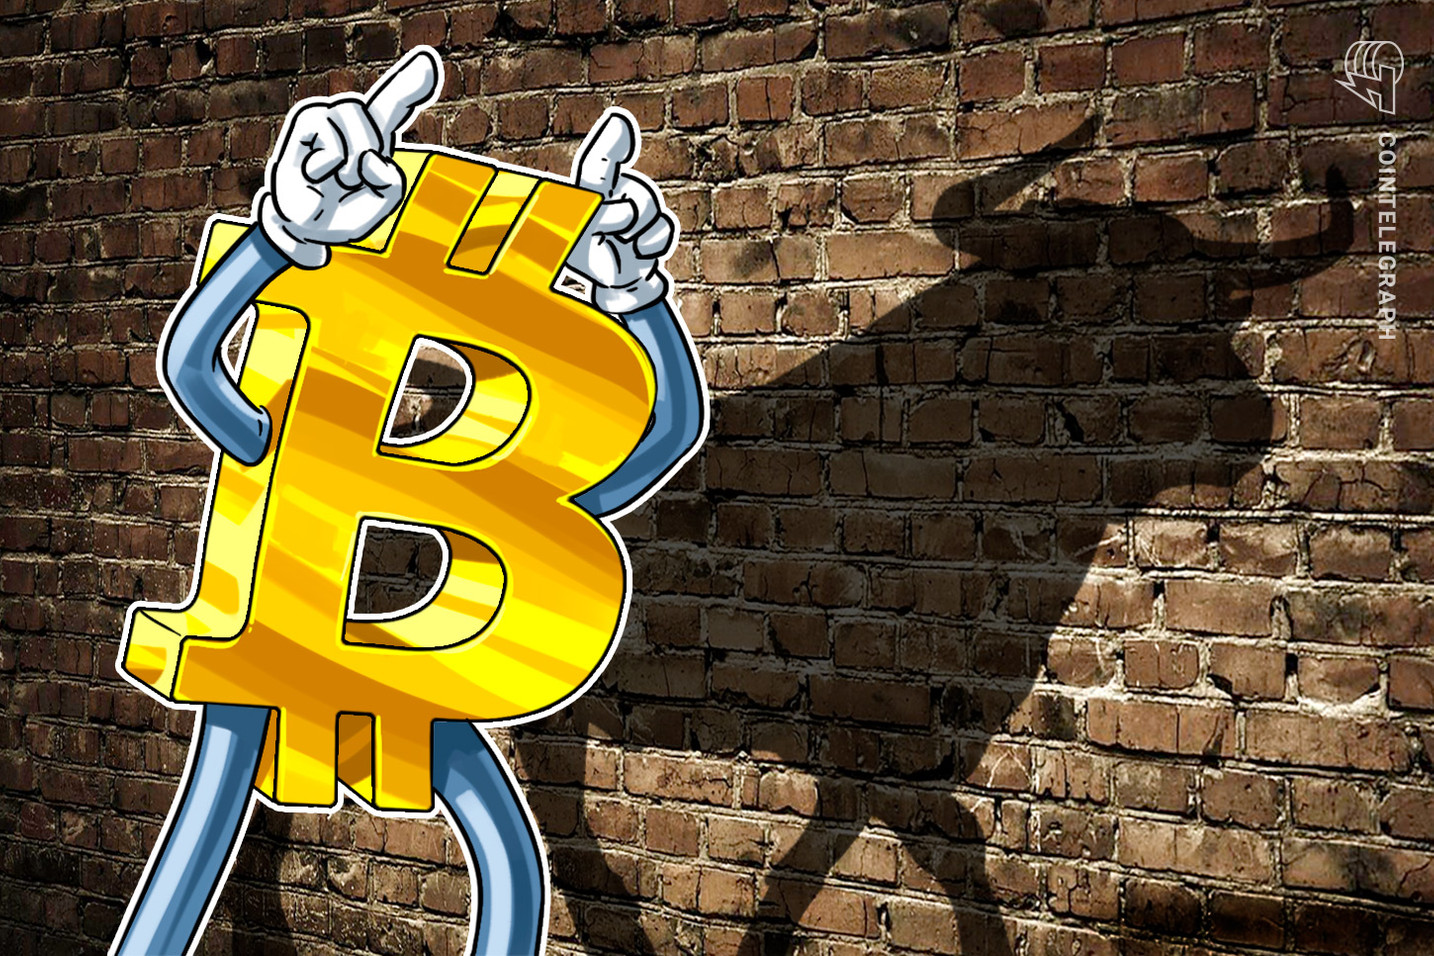 Historically accurate Bitcoin metric nears the next 'potential' price peak